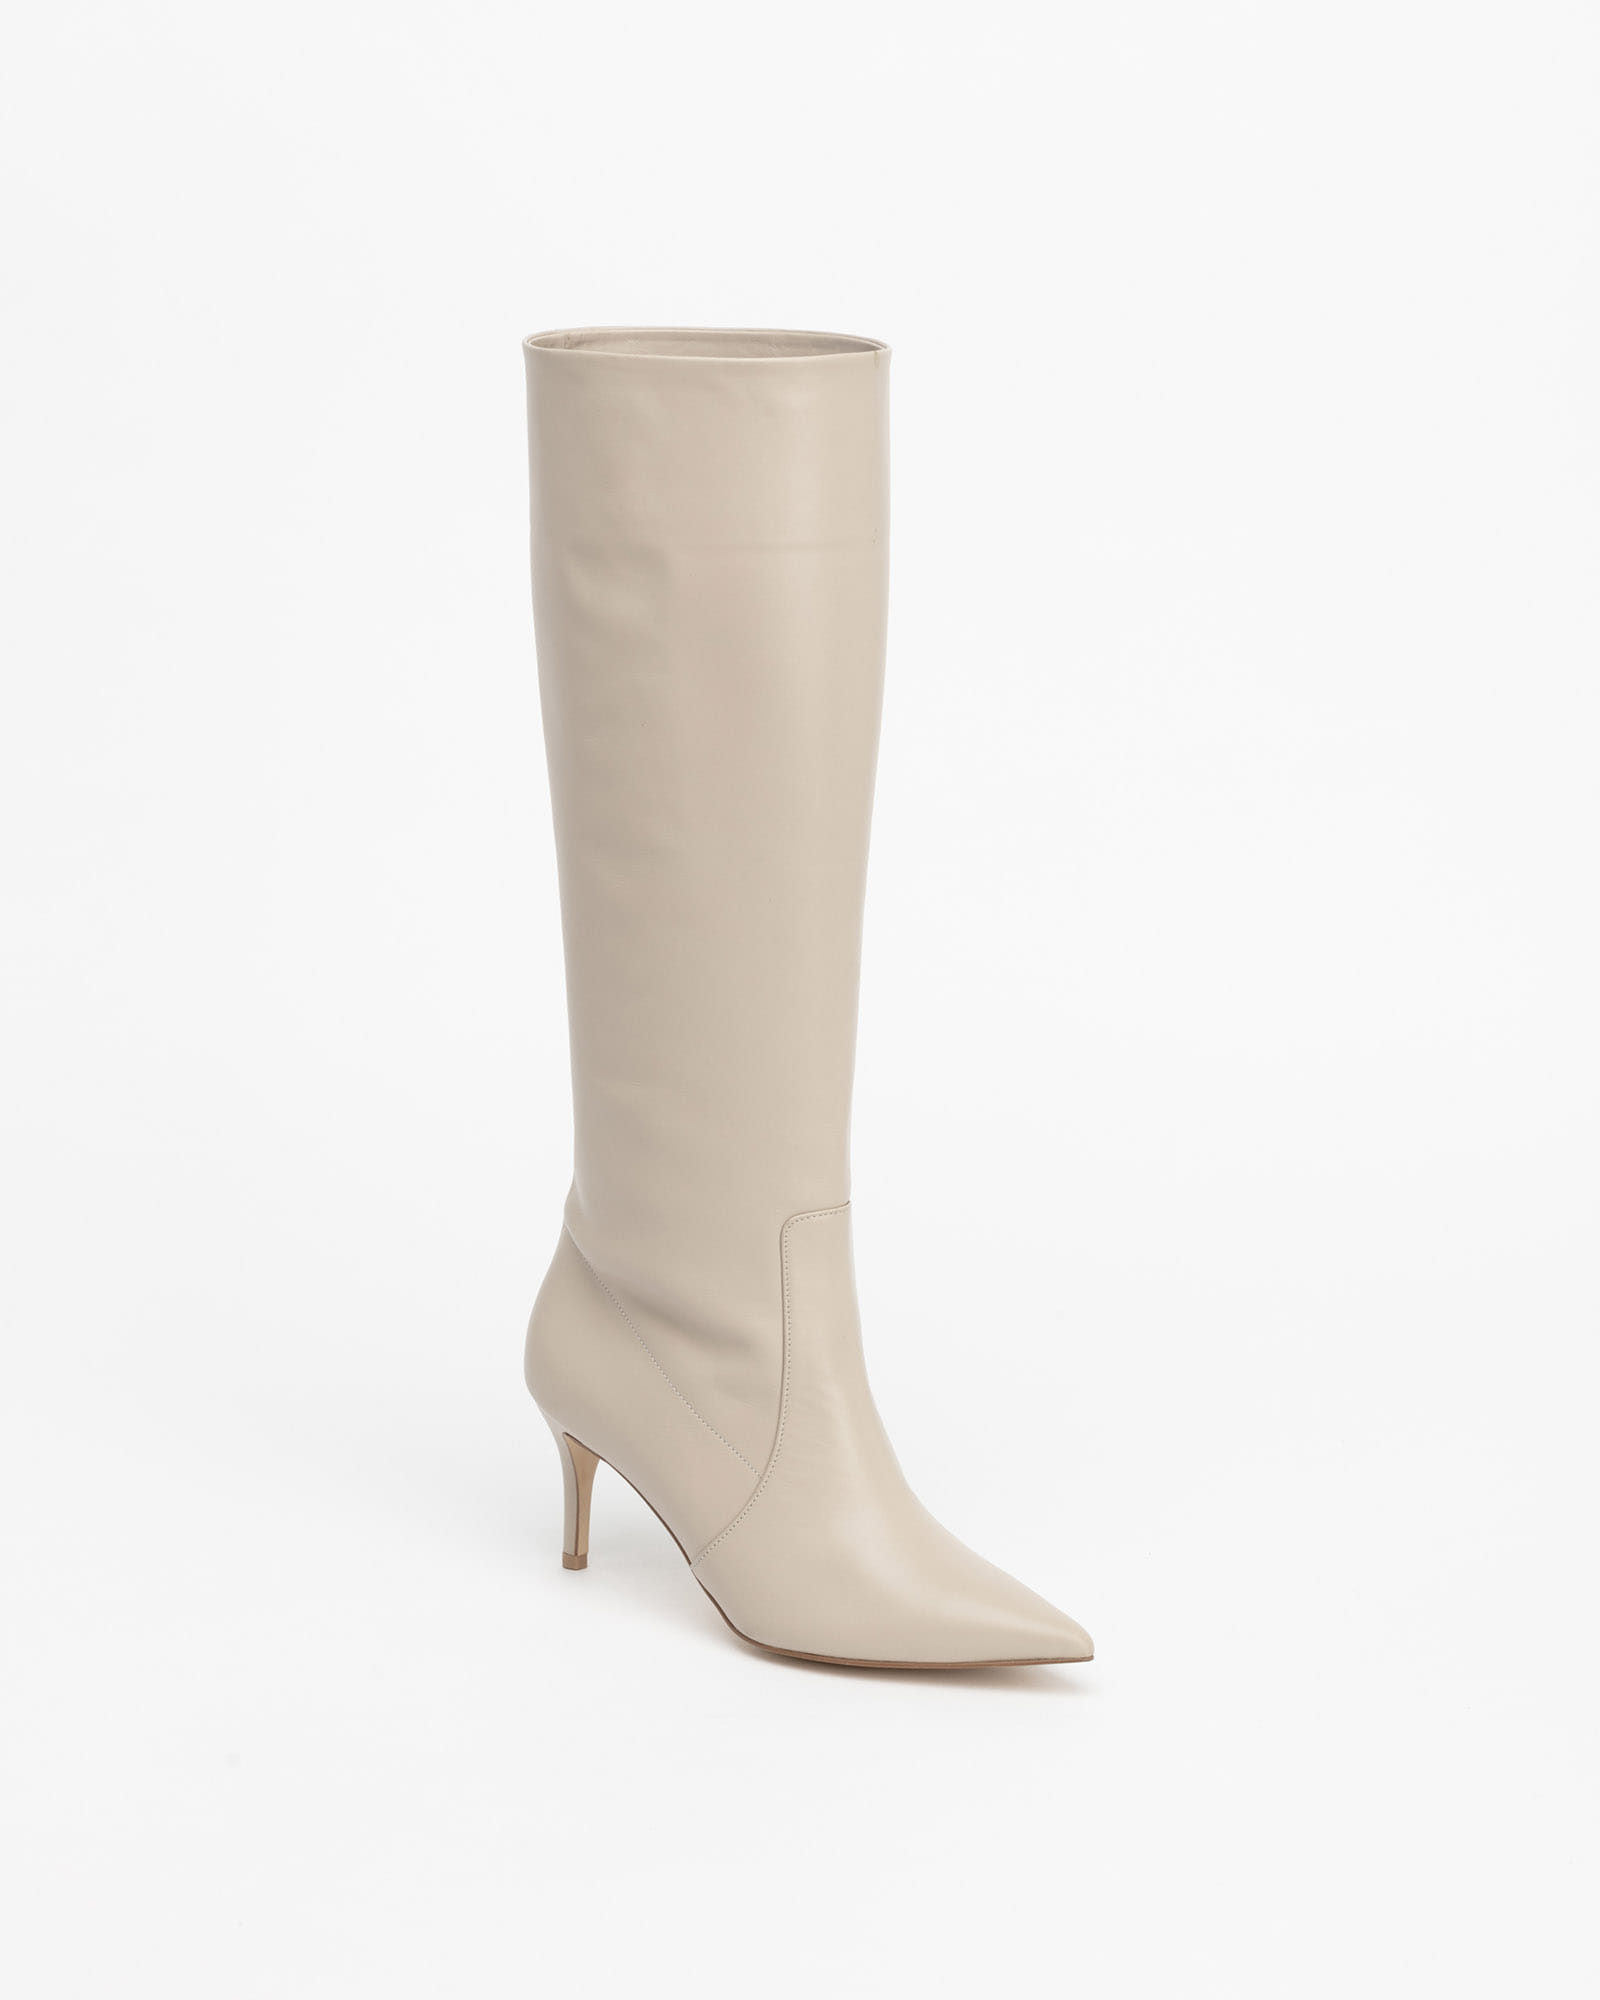 Chaffin Soft Shaft Boots in Taupe Ivory